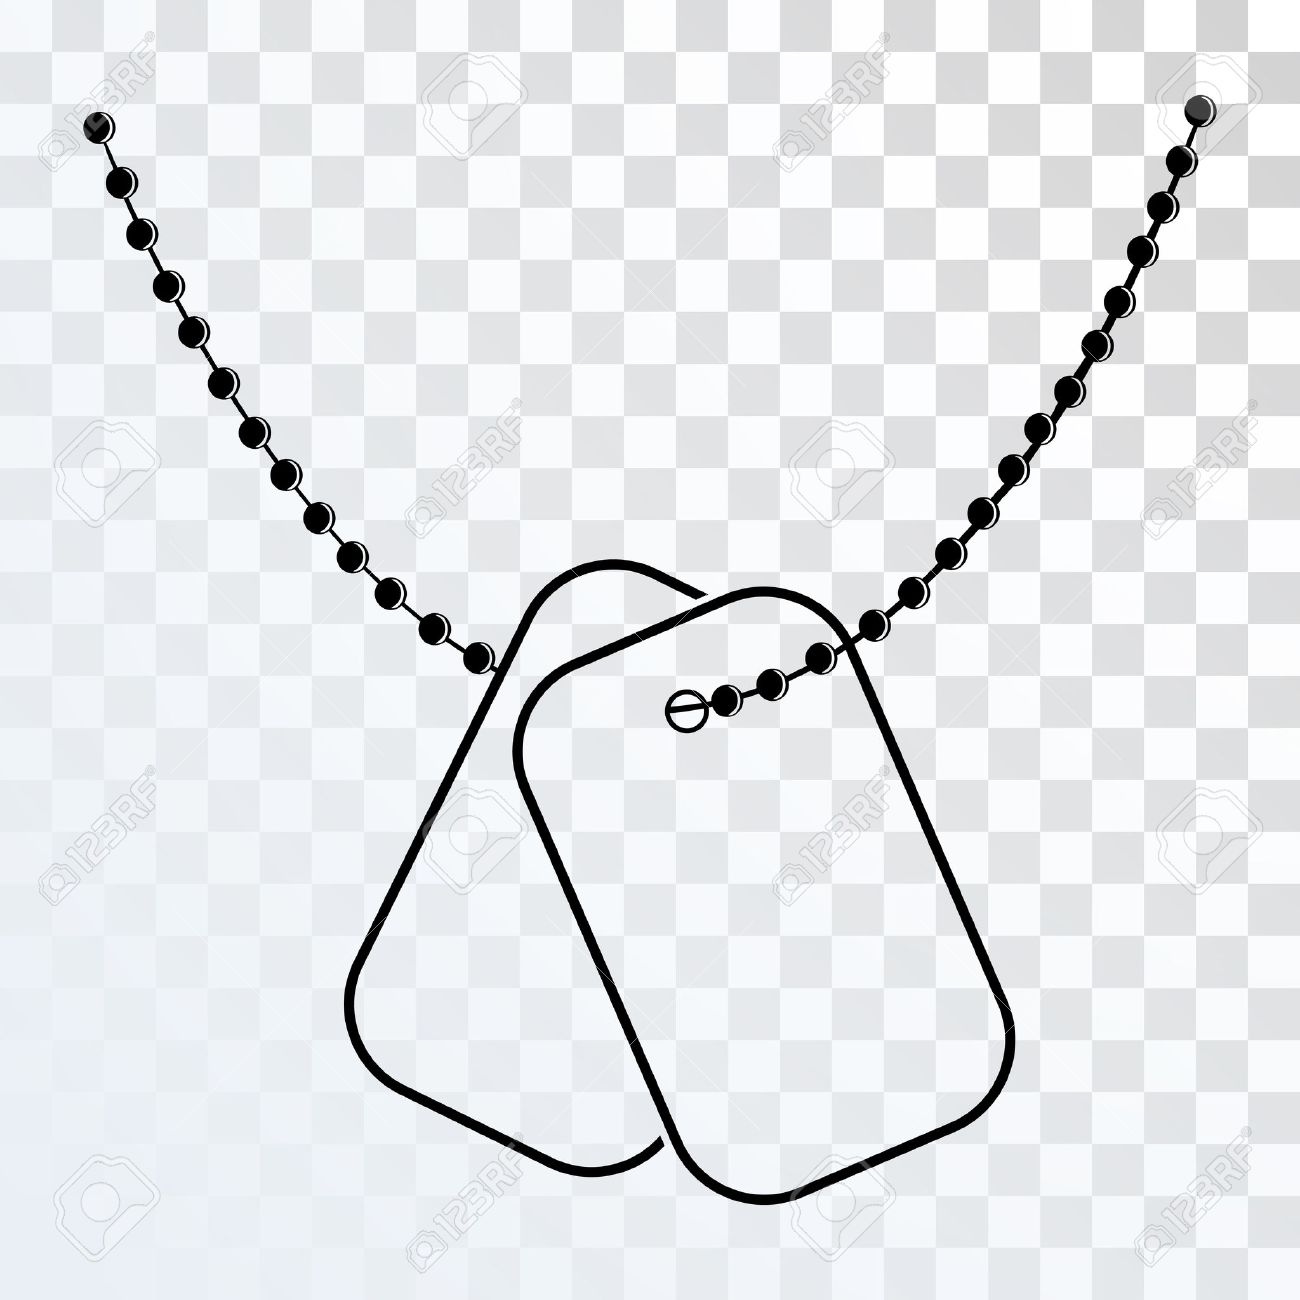 Military Dog Tag Silhouette.